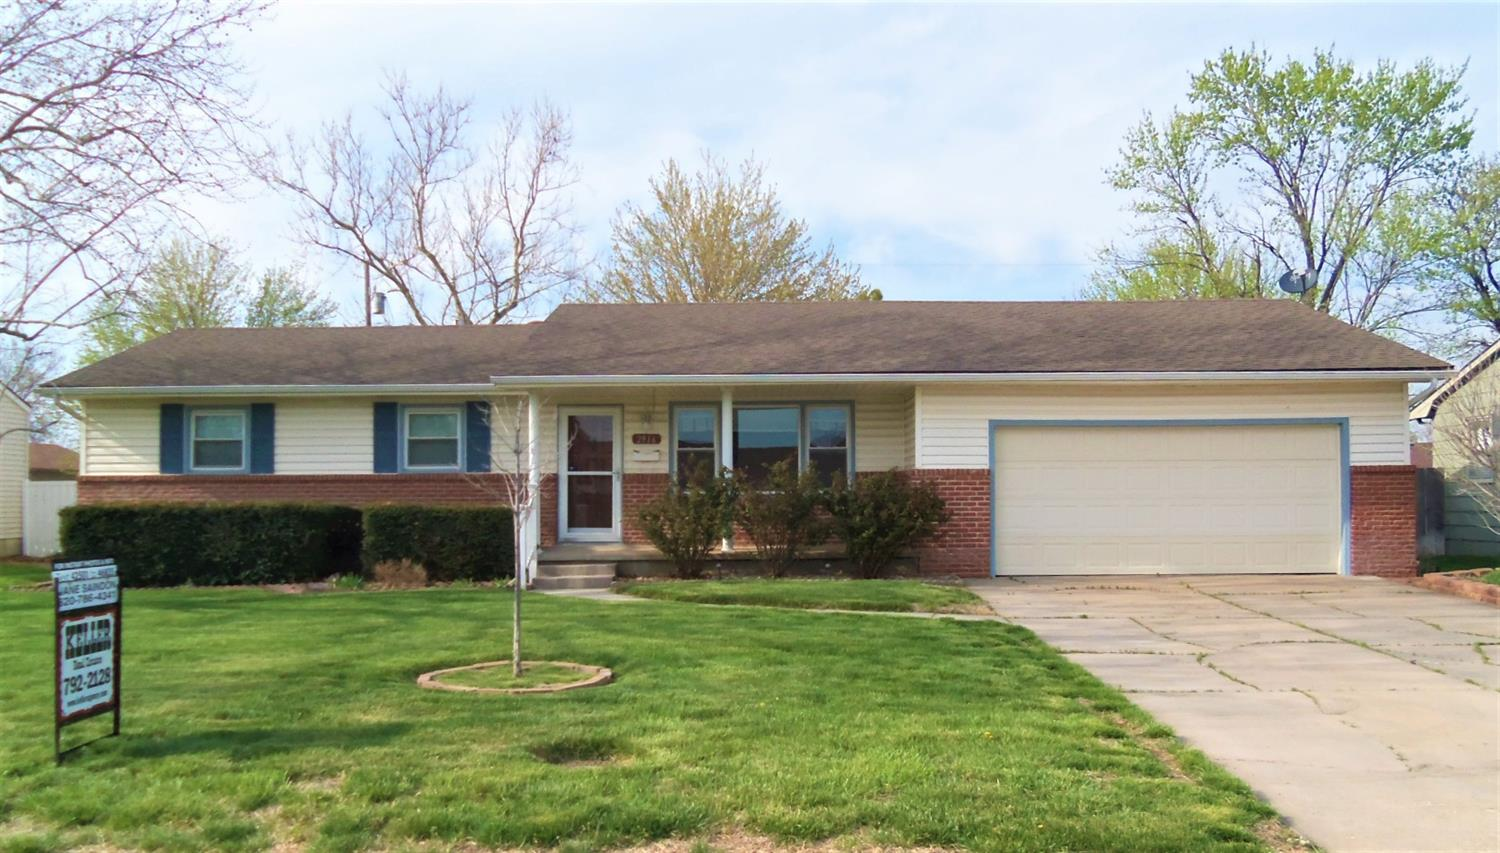 Great neighborhood, Three bedroom, two baths, brick & sided, maintenance free exterior home.  Living room with engineered hardwood floors. Kitchen and dining area with tile floors and all newer appliances.  Basement with large family room, non-conforming bedroom, 3/4 bath, utility and storage room.  Over-sized double car garage , covered patio, privacy fenced yard with sprinklers.